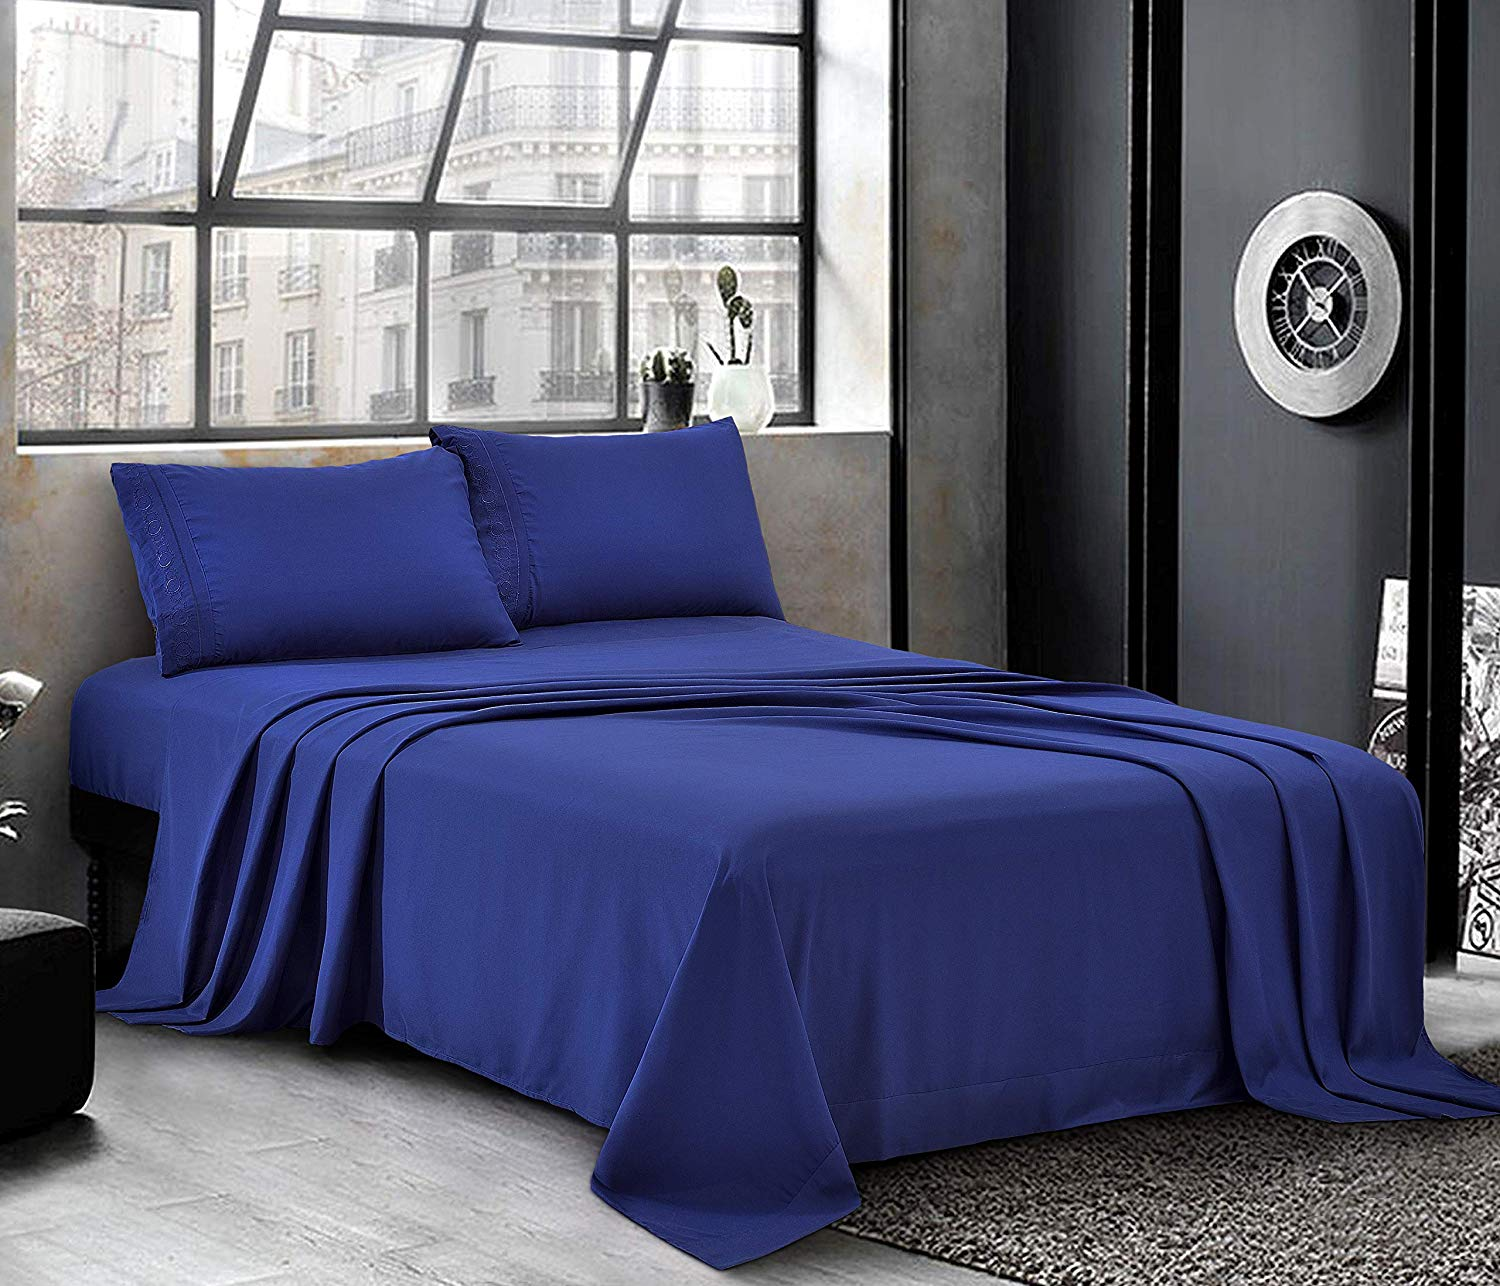 Hotel Luxury Bed Sheets - Cal King Sheet Set [4-Piece, Navy Blue] - Sateen Weave, Premium Microfiber - Soft and Breathable - Deep Pocket Fitted Sheet, Flat Sheet, Pillow Cases